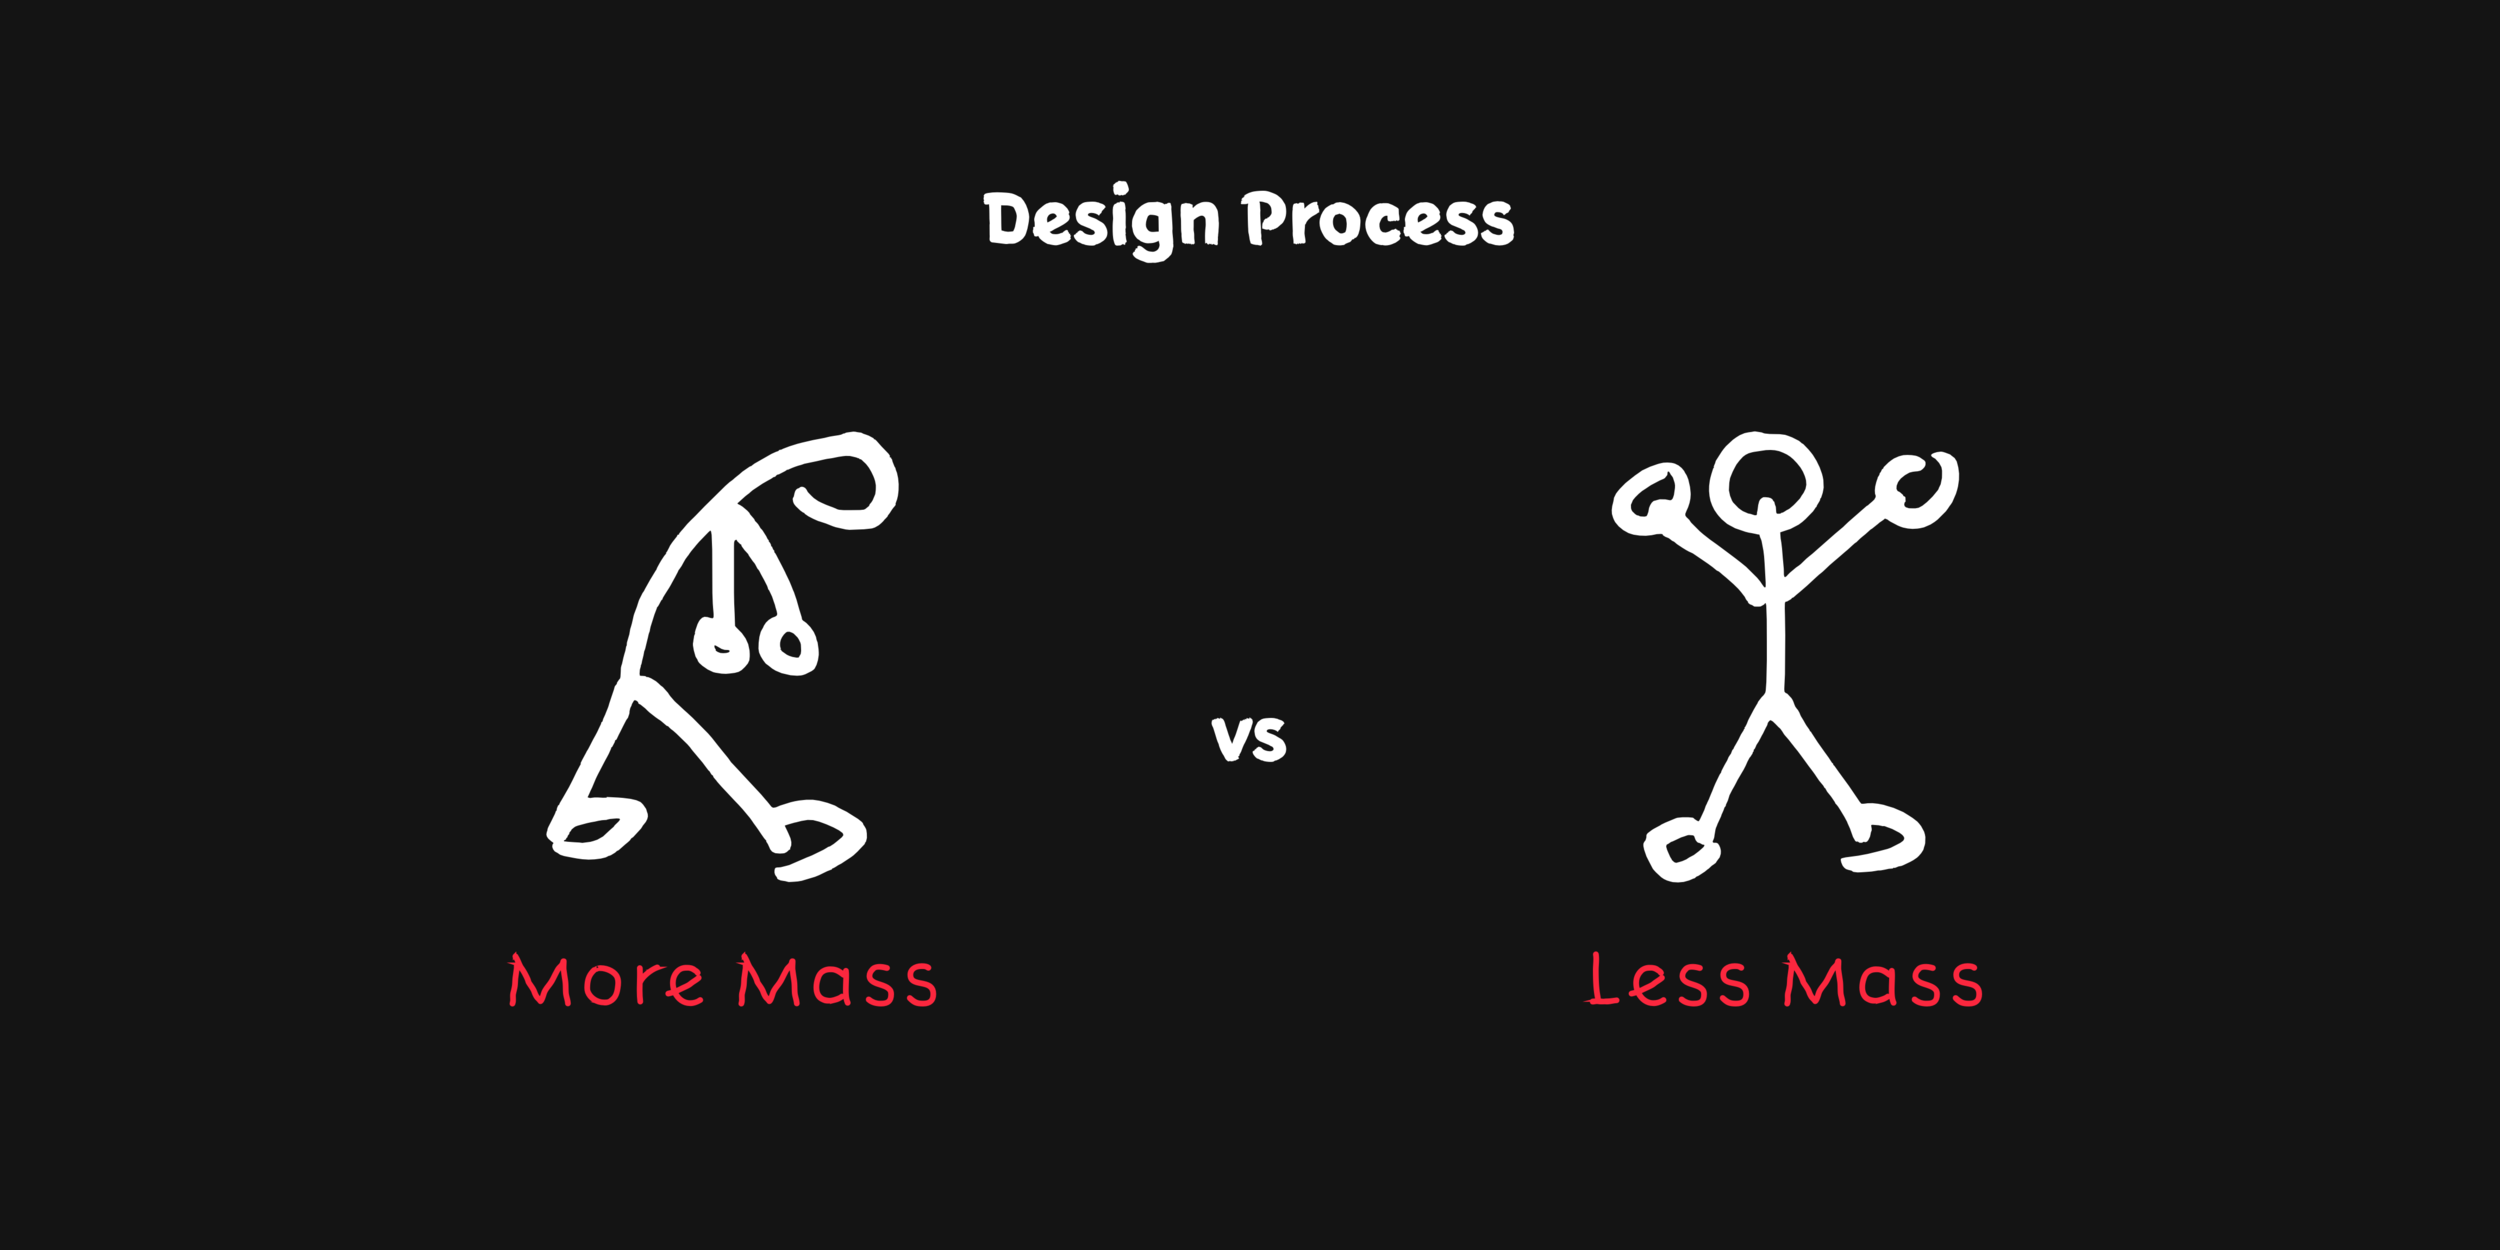 design_process_less_mass_laroche.png